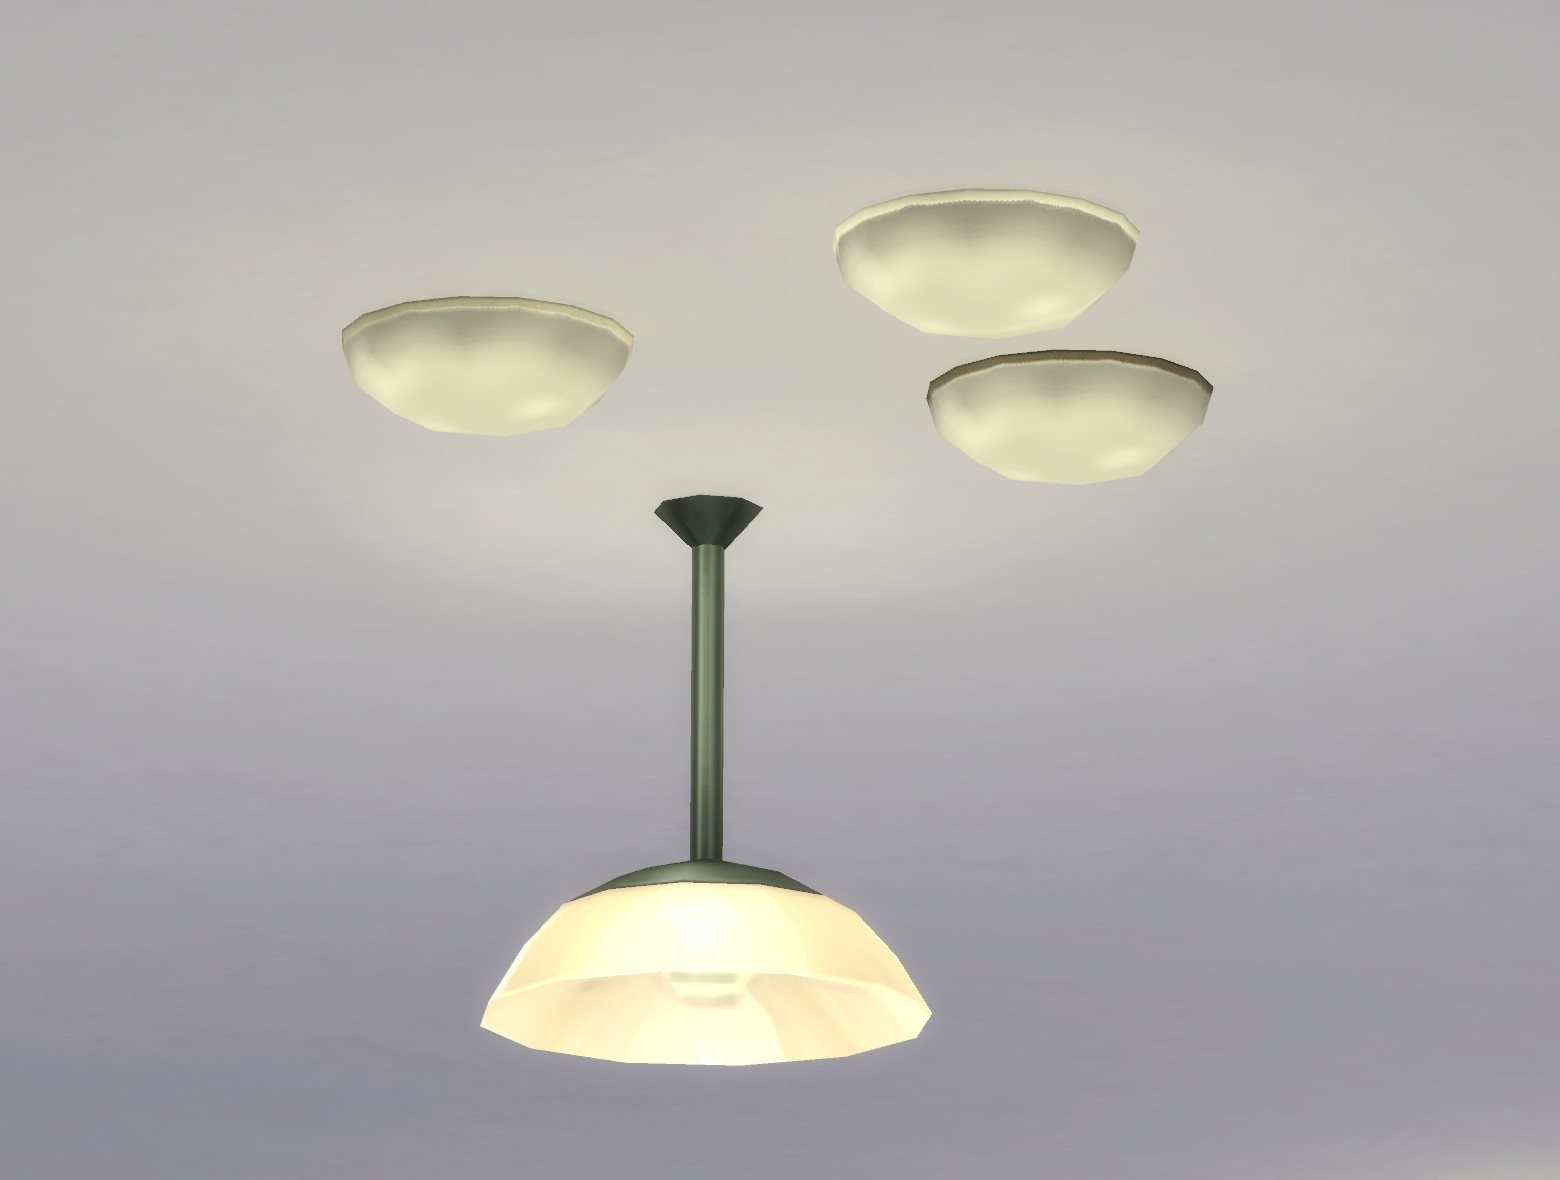 kids ceiling lighting. X Kids Ceiling Lighting R